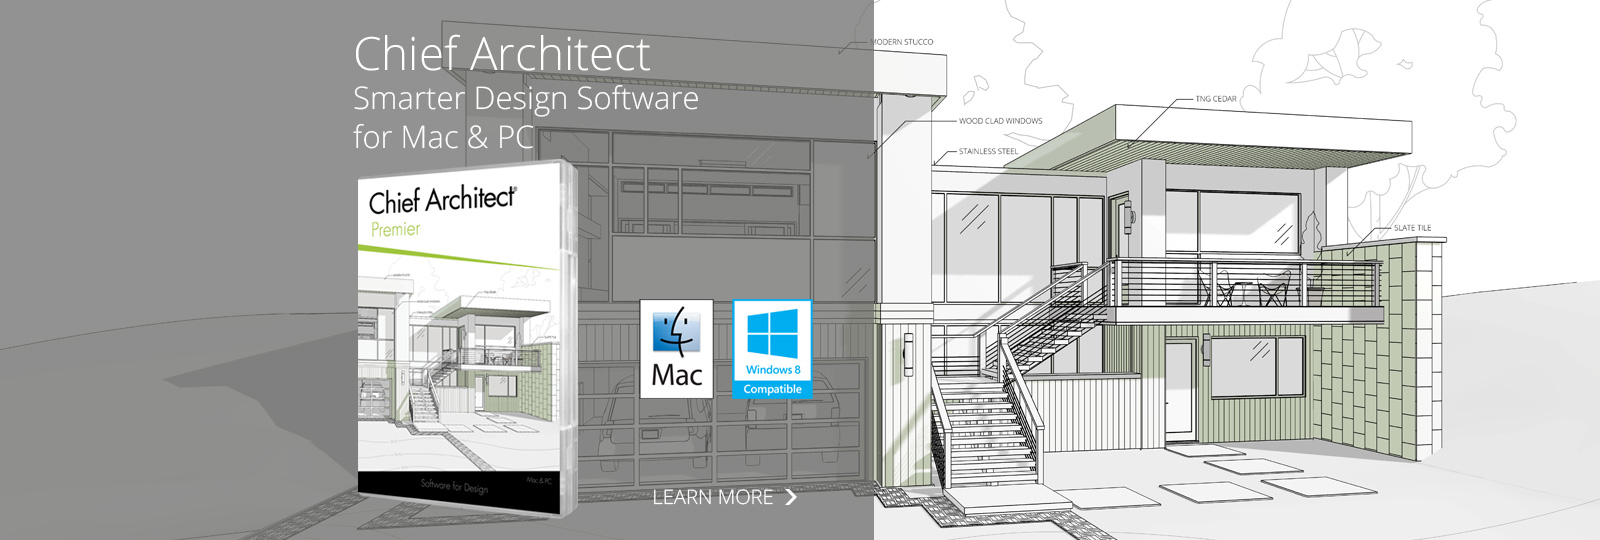 Architectural Home Design Software By Chief Architect: 3d home builder software